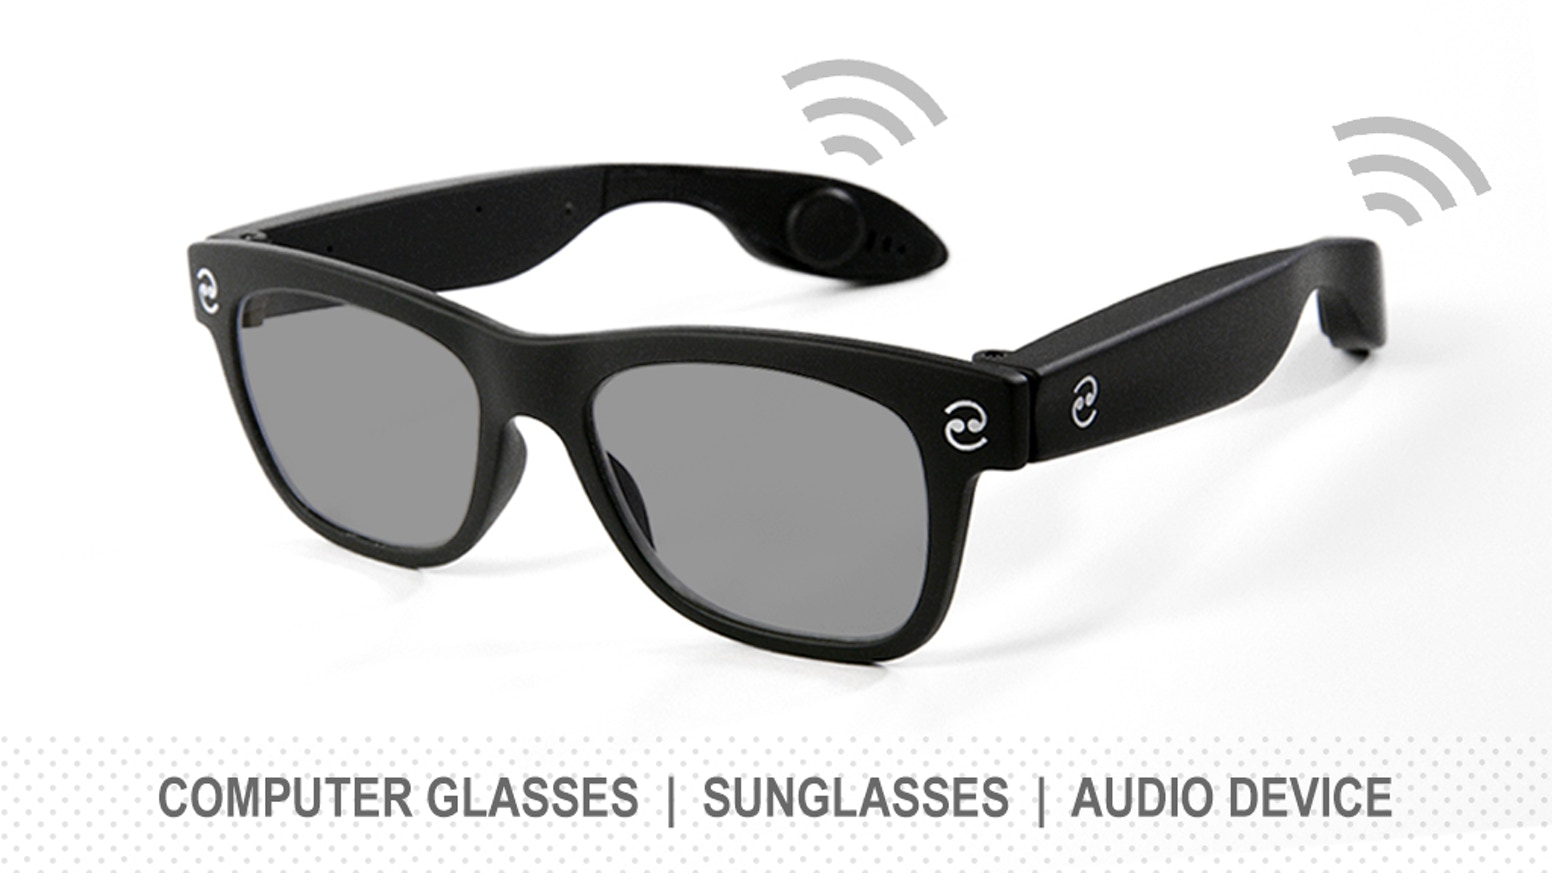 Revolutionary bone conducting glasses for both indoor and outdoor protection wear!